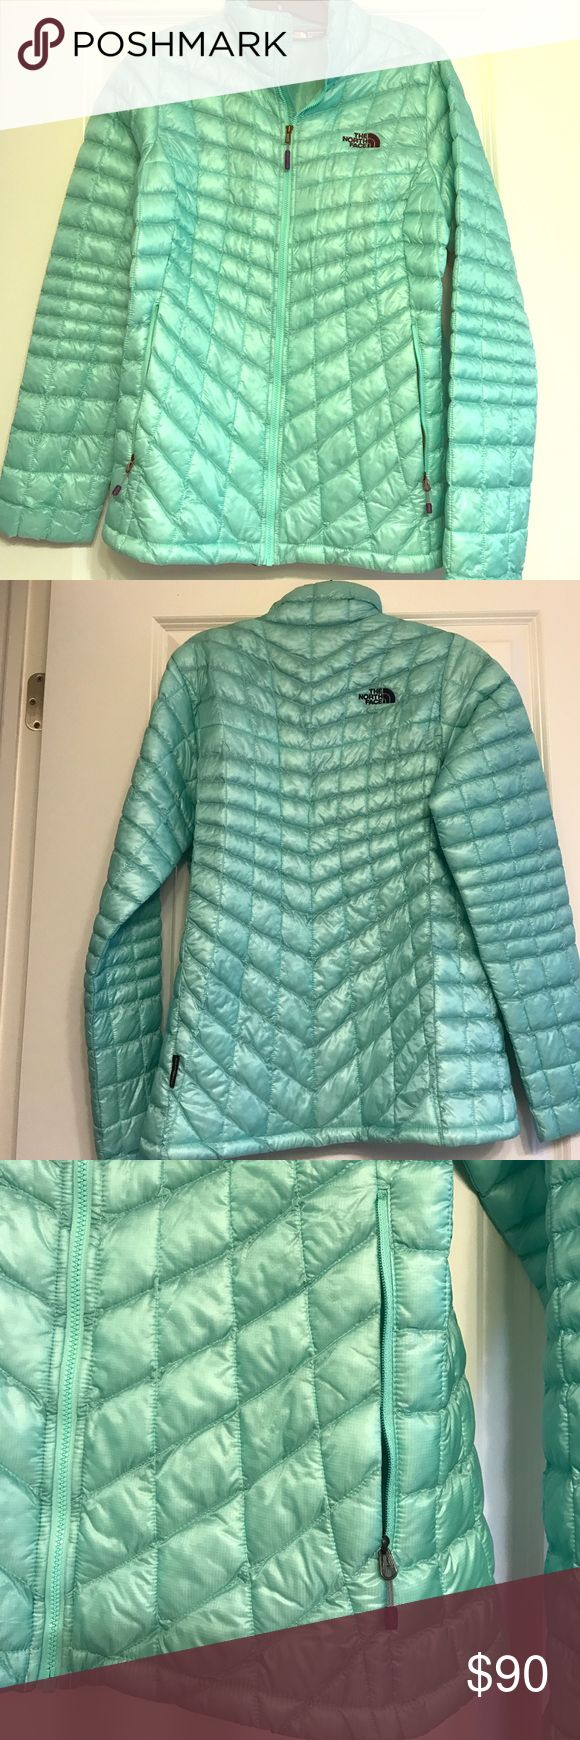 North Face Thermoball jacket Mint green, flawless jacket! Size M! Only worn 1-2x. Side zip pockets. North Face logo on front and back. North Face Jackets & Coats Puffers